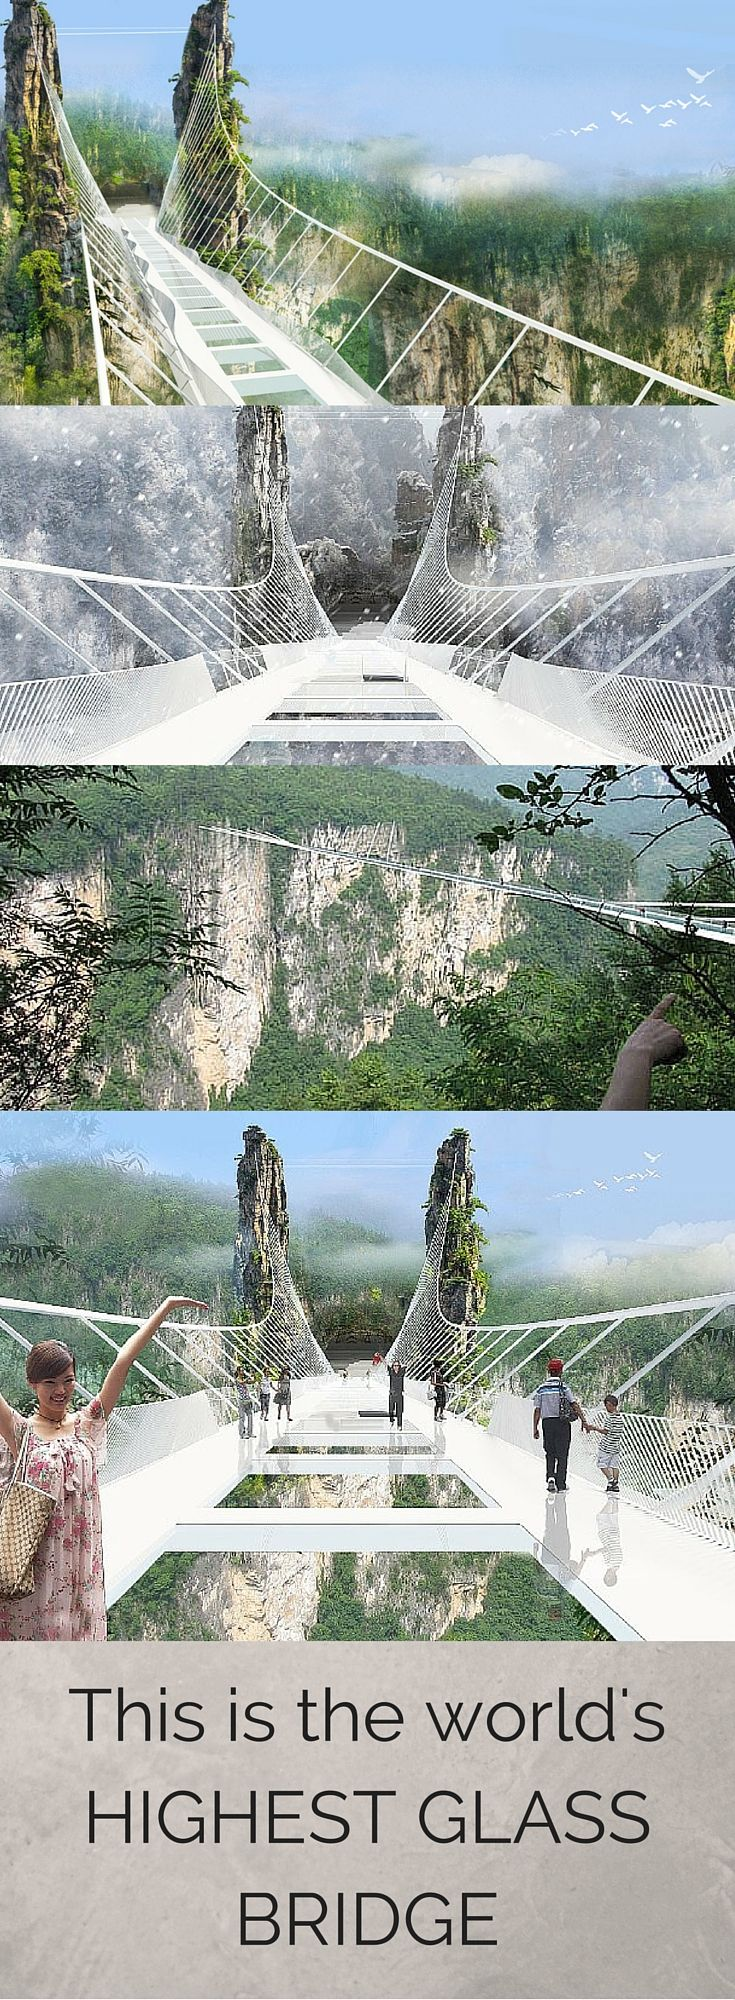 This is the world's highest and longest glass bridge. Read more online at m2woman.co.nz